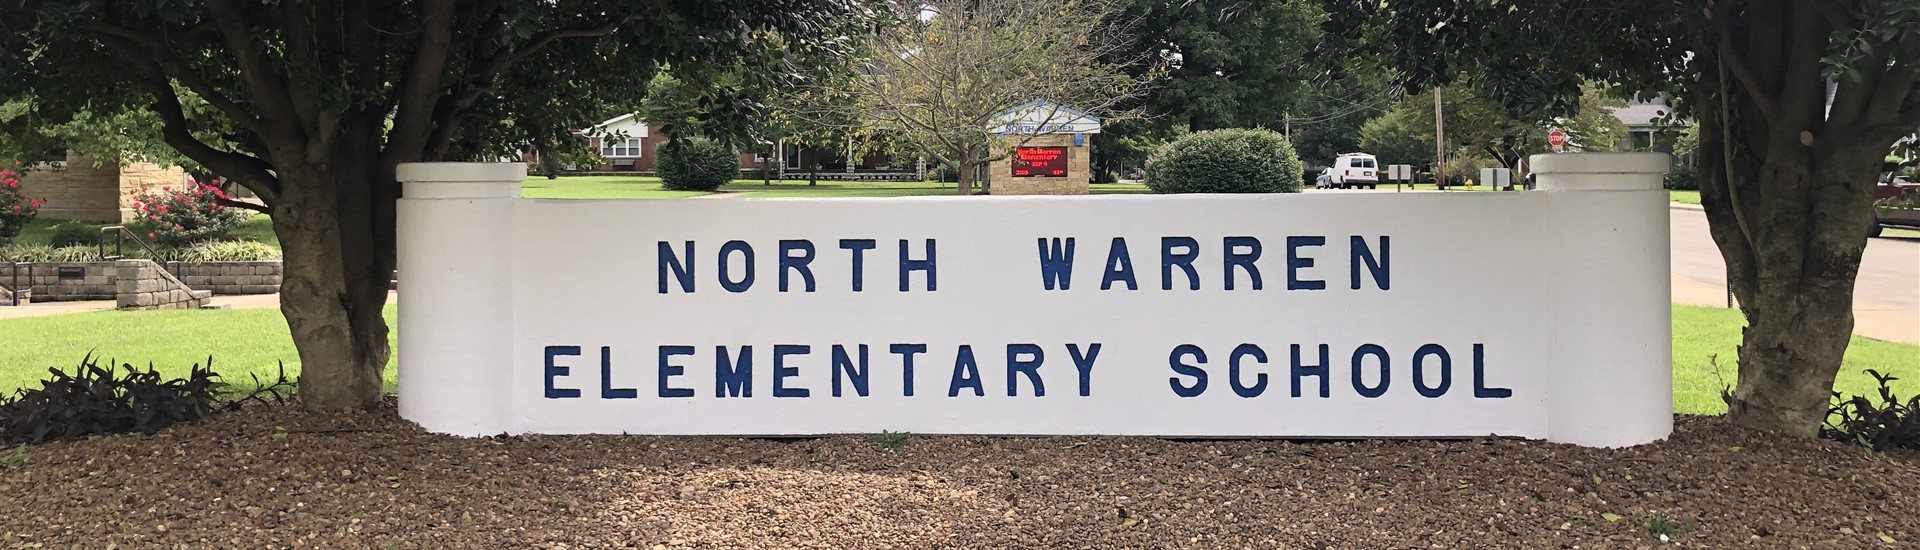 Historical NWES Sign